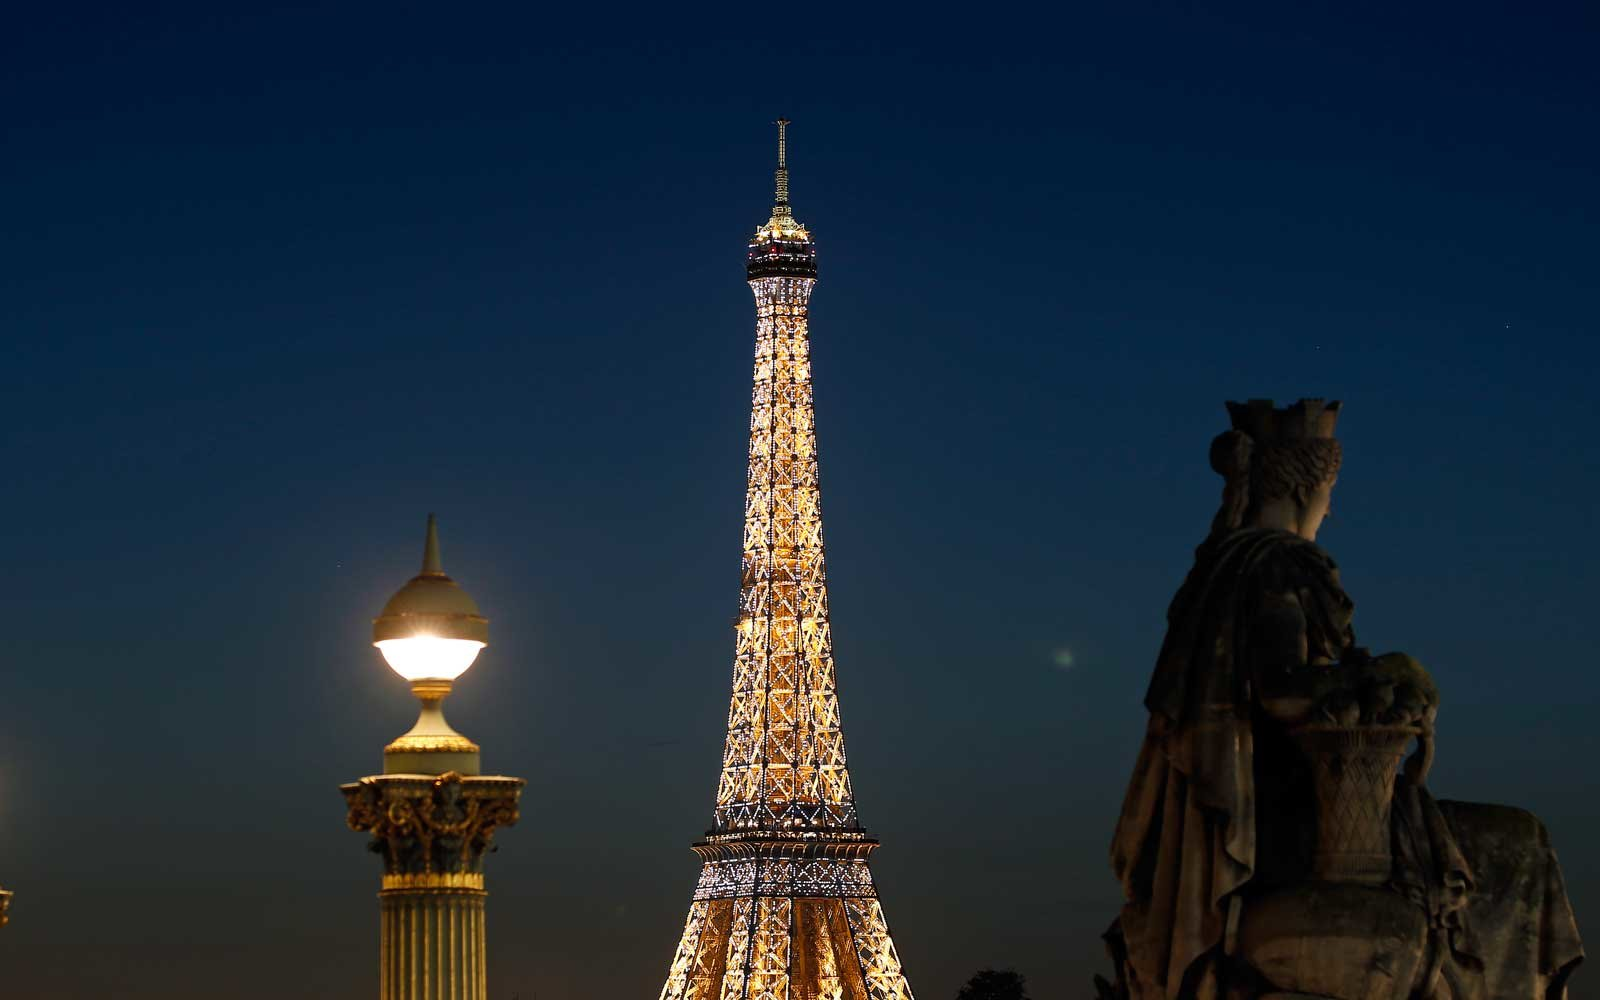 Lights of the Eiffel Tower in Paris